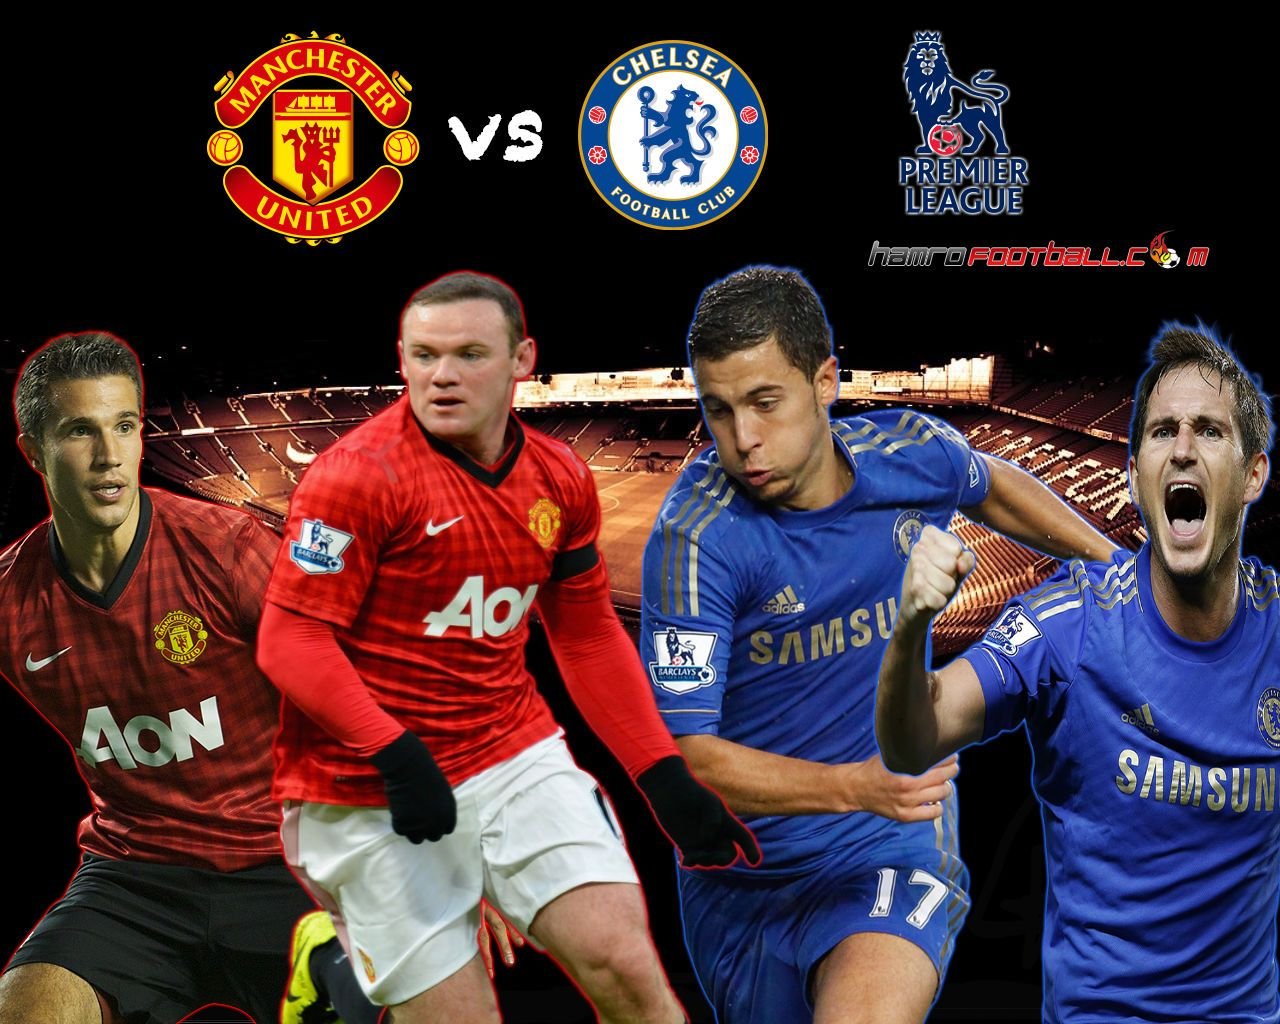 Manchester united vs chelsea 2012 2013 hd best wallpapers manchester united vs chelsea 2012 2013 hd best wallpapers voltagebd